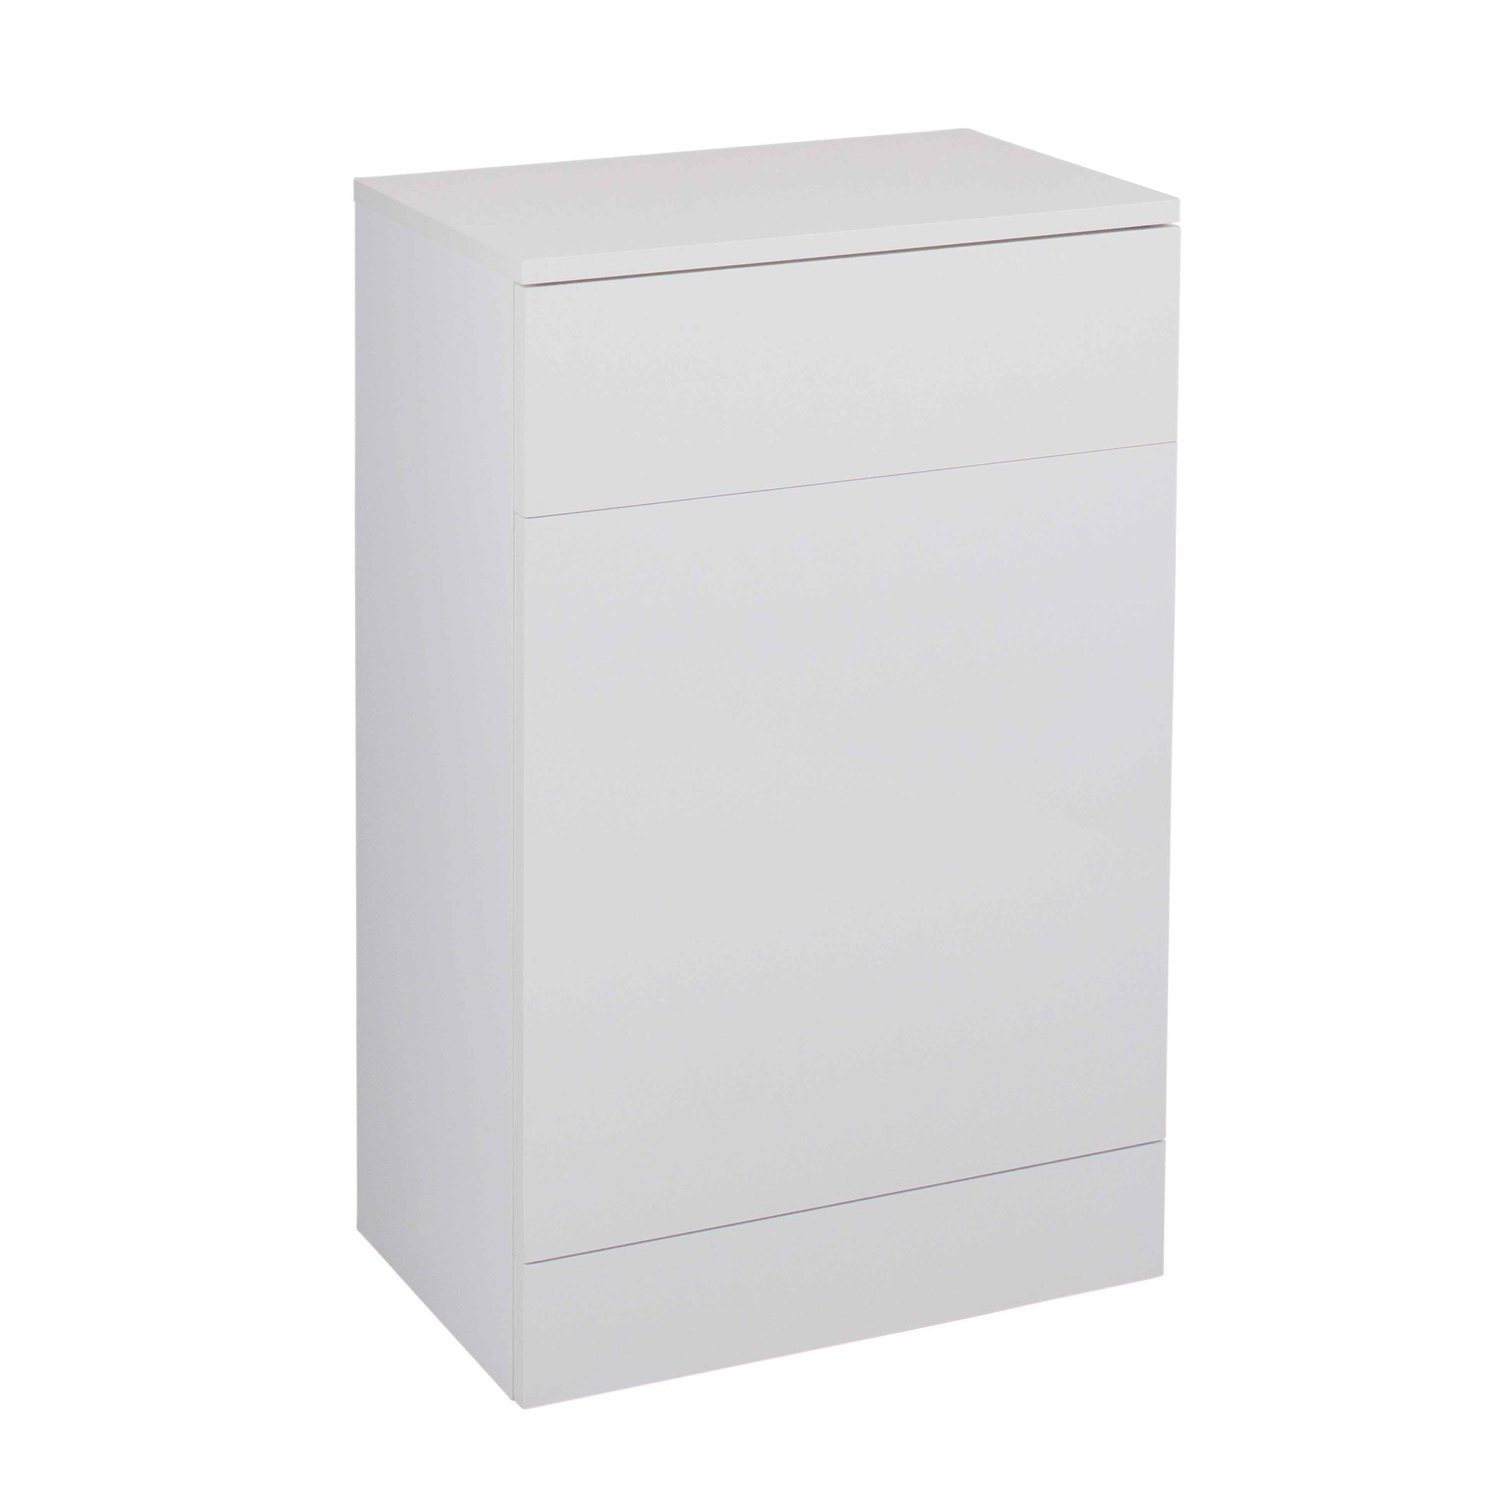 White Back to Wall WC Toilet Unit  without toilet  W500 x D300mm